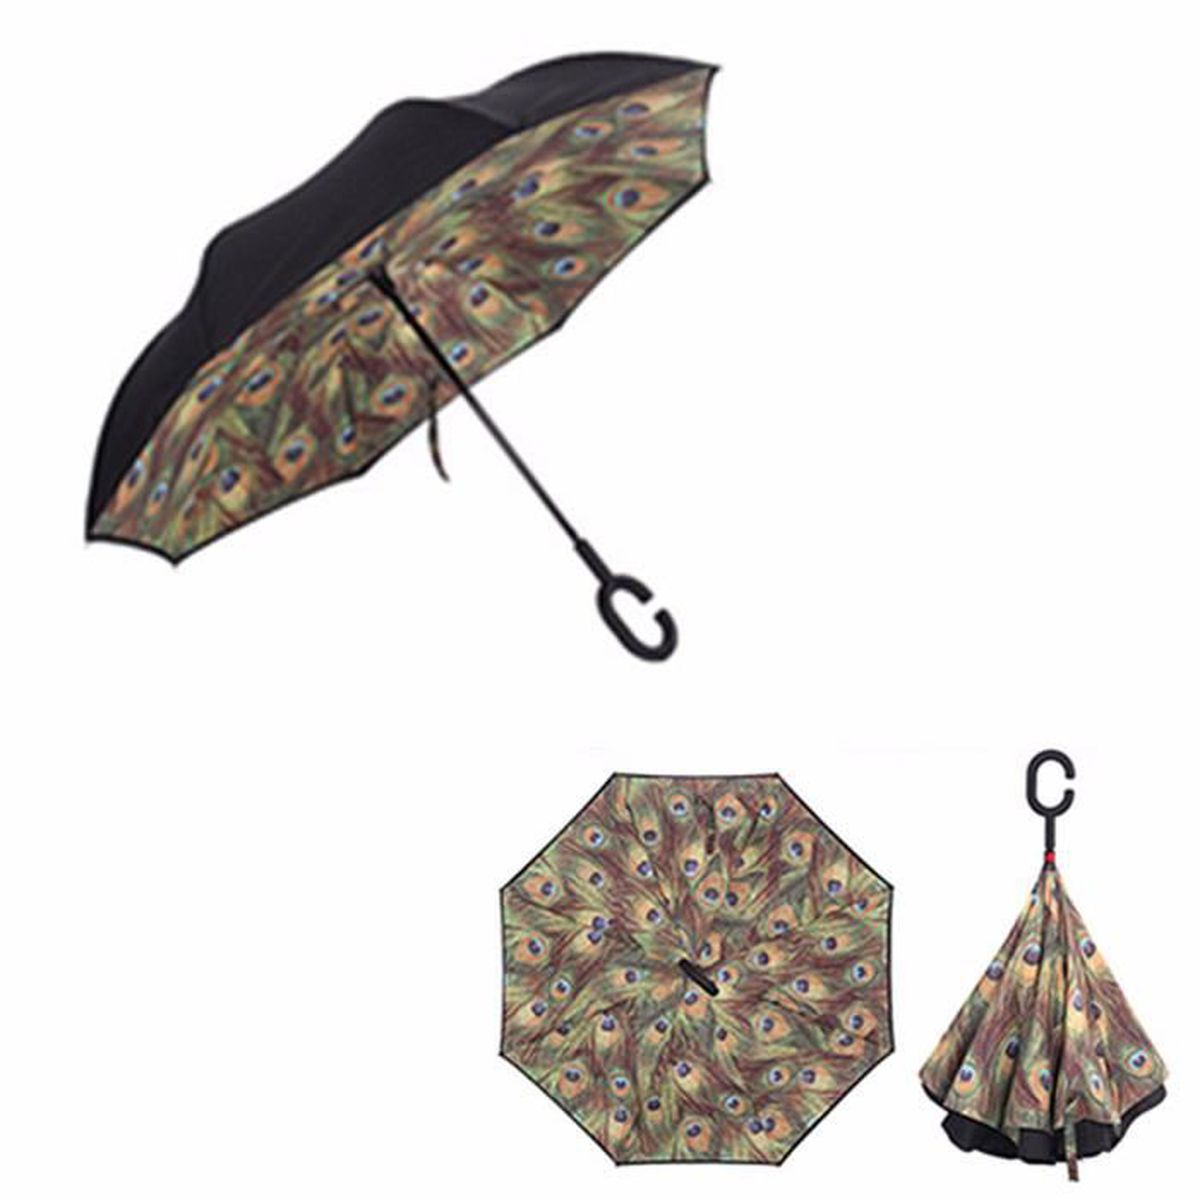 parapluie imprim invers double parasol anti uv vent soleil pliant auto achat vente. Black Bedroom Furniture Sets. Home Design Ideas